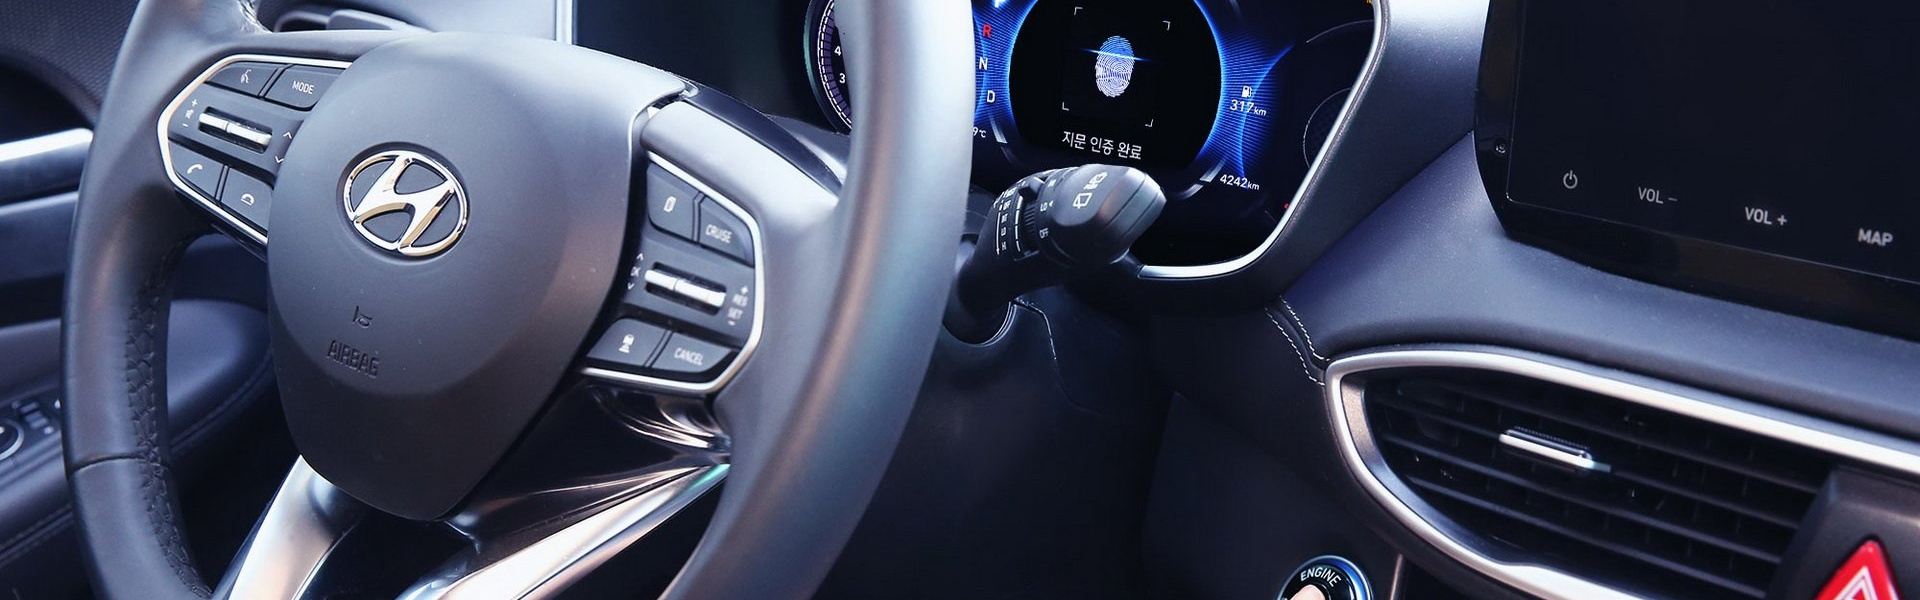 hyundai-fingerprint-technology_04.jpg